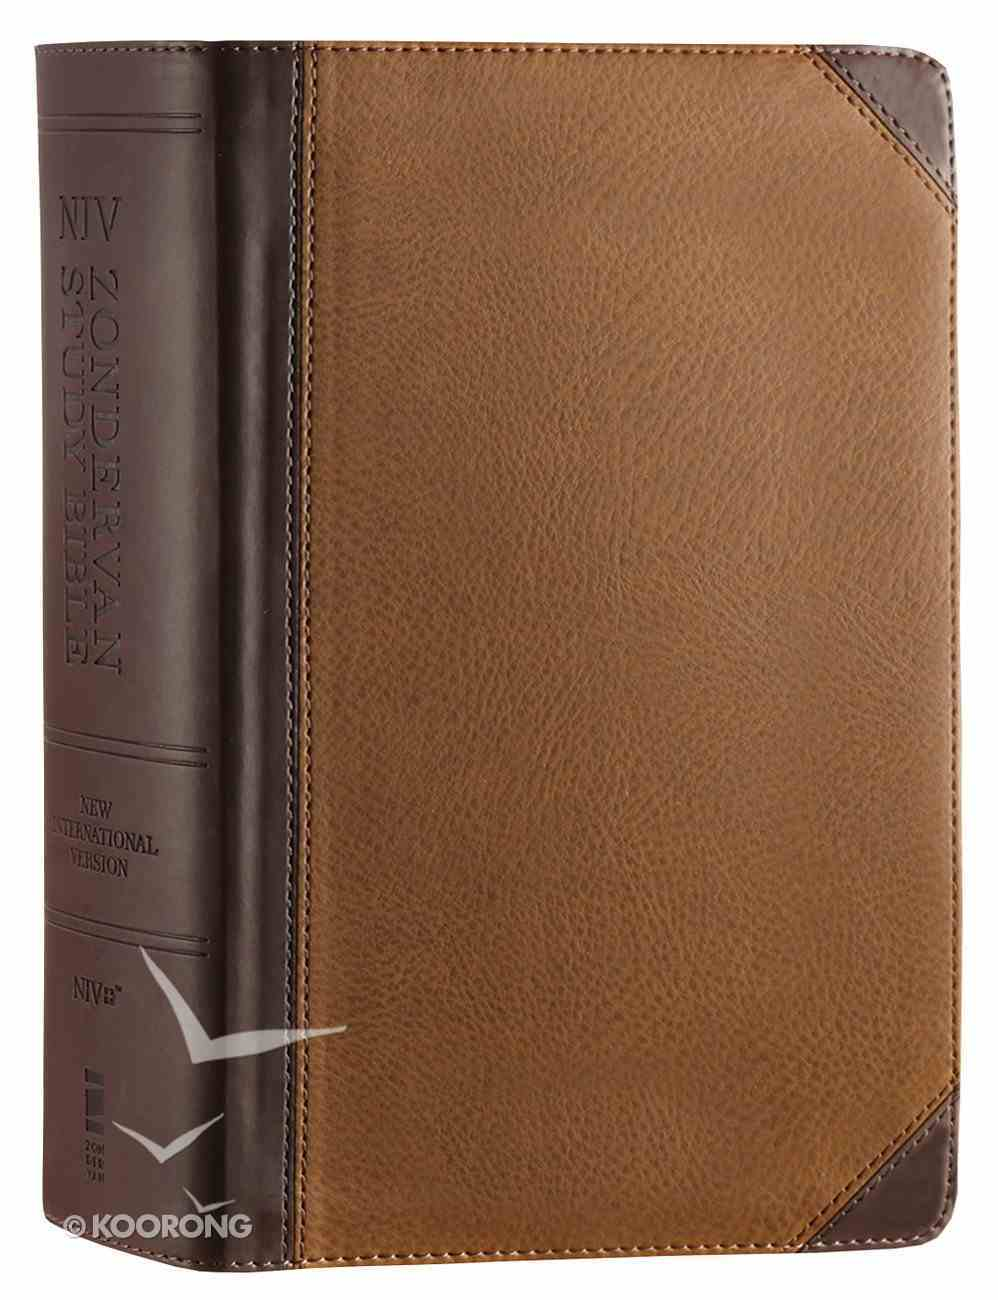 NIV Zondervan Study Bible Full Colour Personal Size Chocolate Caramel (Black Letter Edition) Premium Imitation Leather